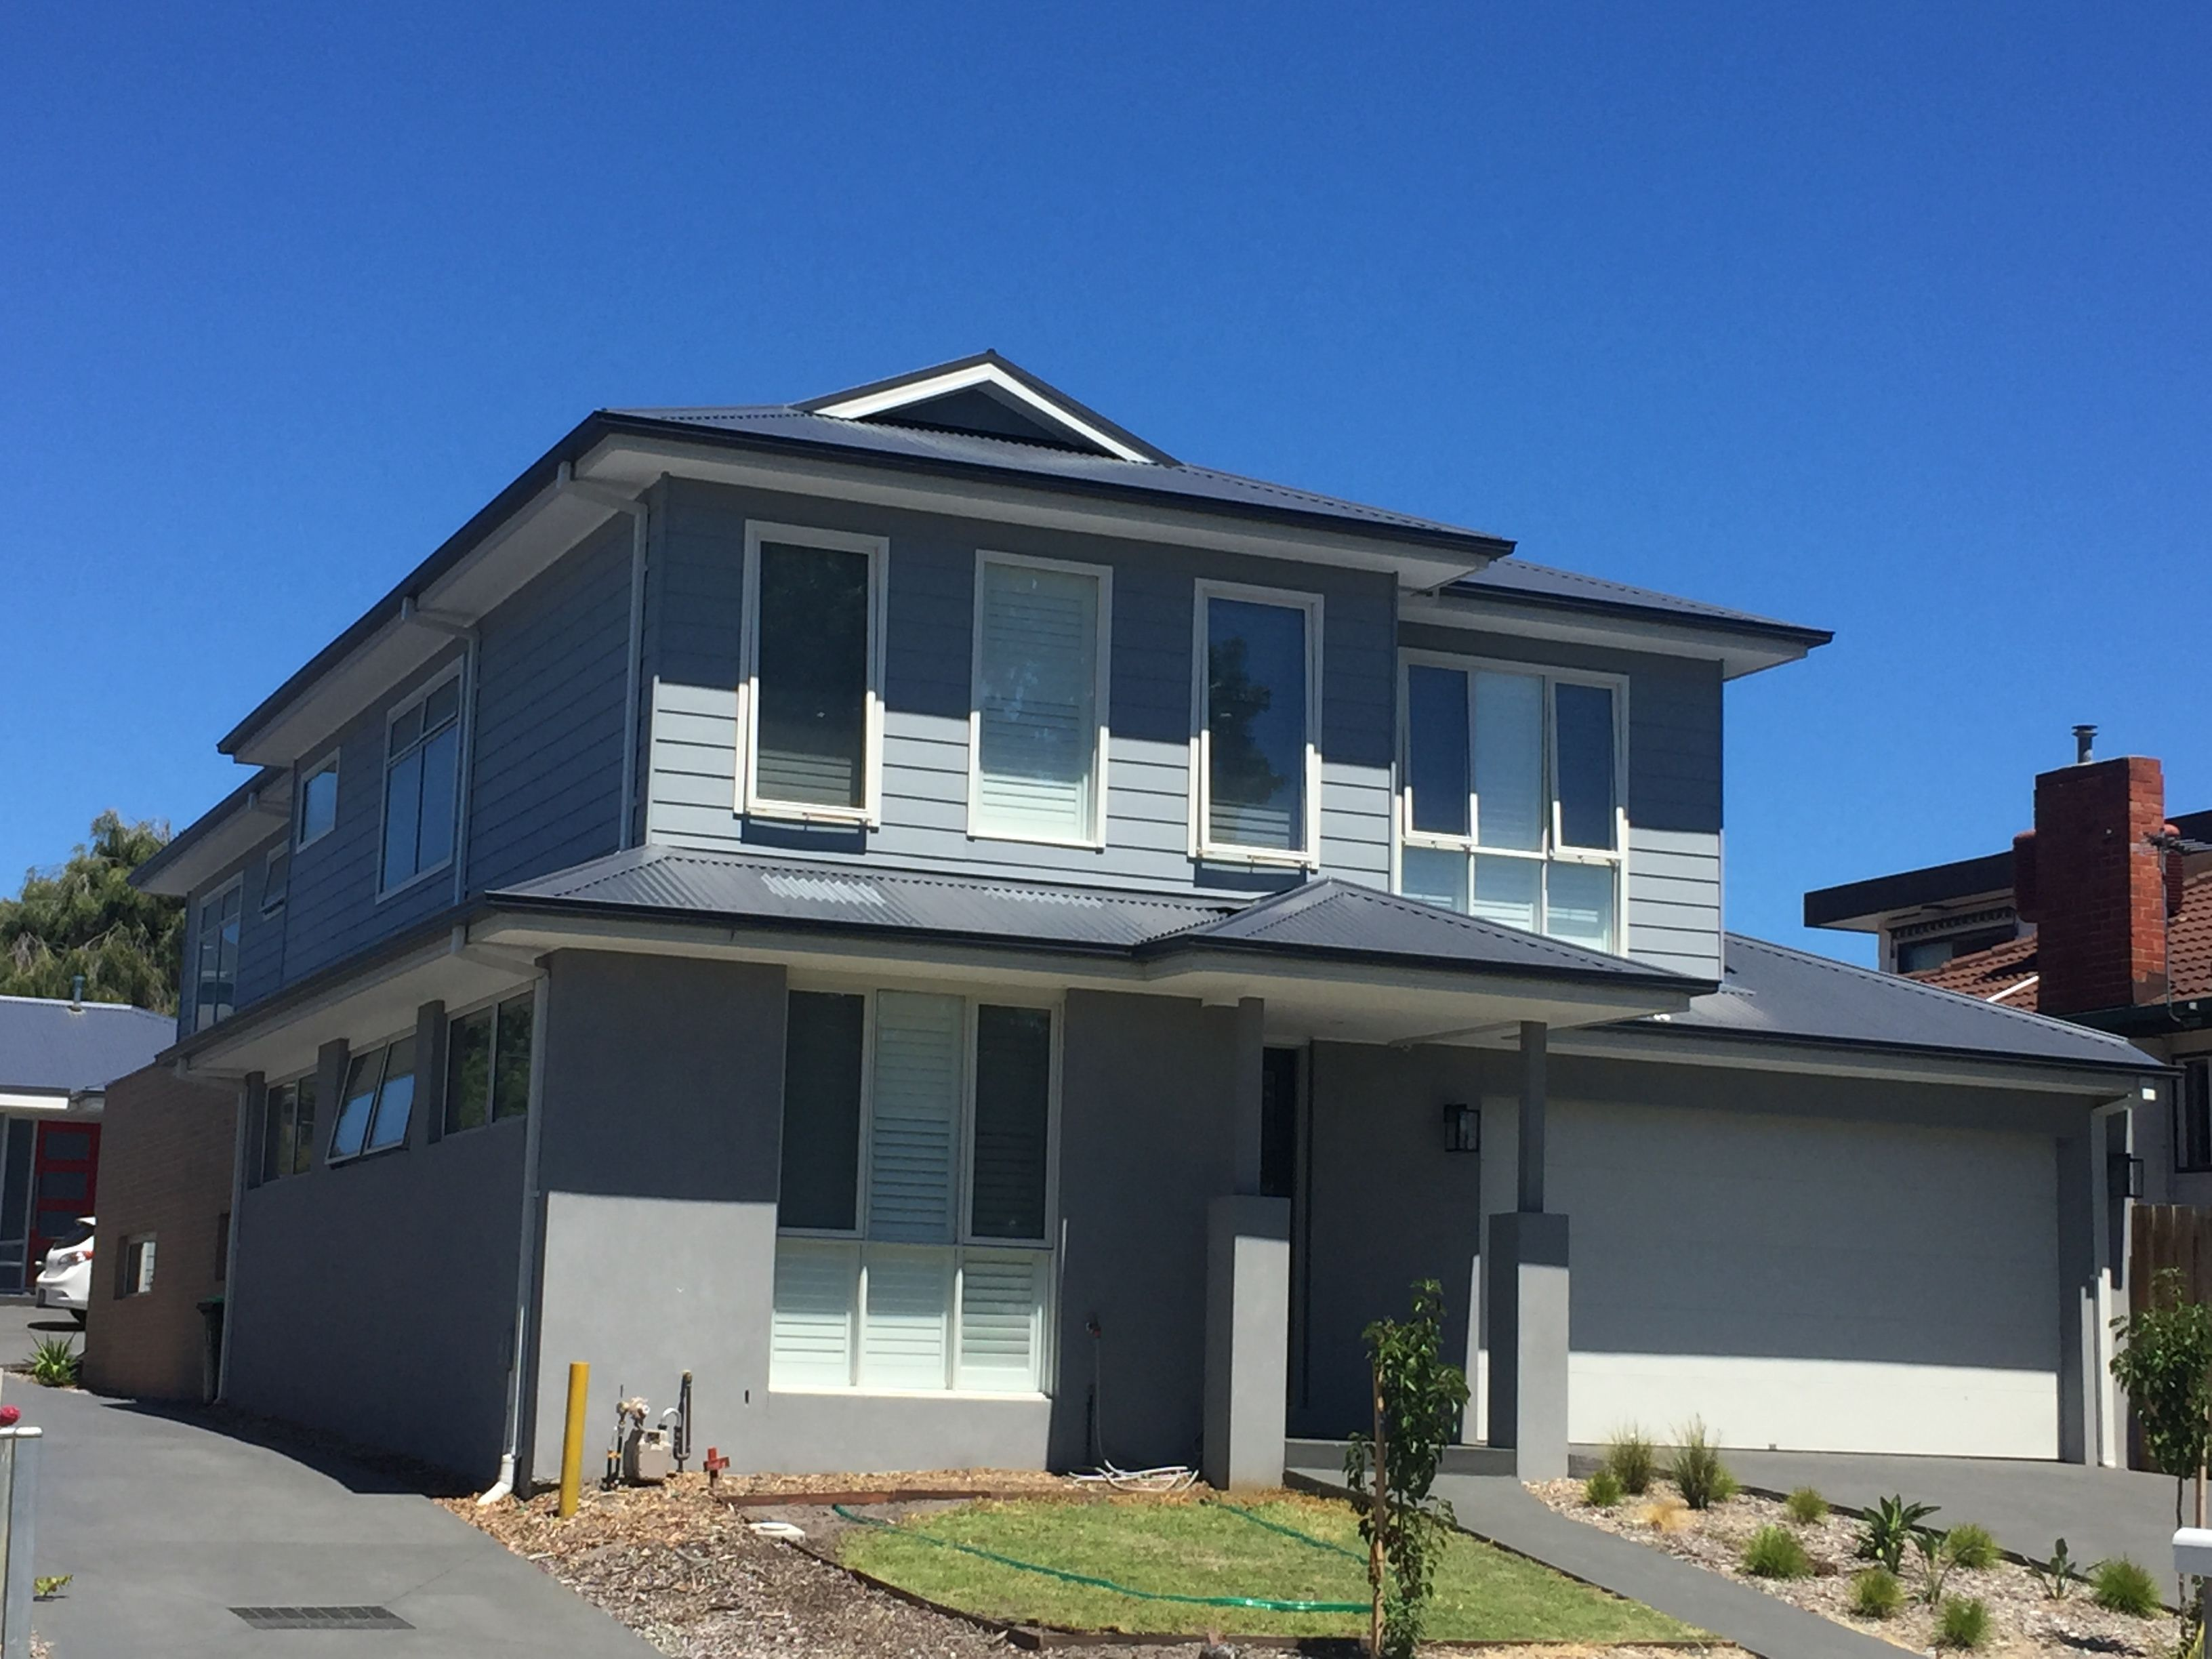 Colourbond Roof Ironstone Render Weatherboard Dulux Endless Dusk Trim Surfmist Facade House Exterior House Colors Hamptons House